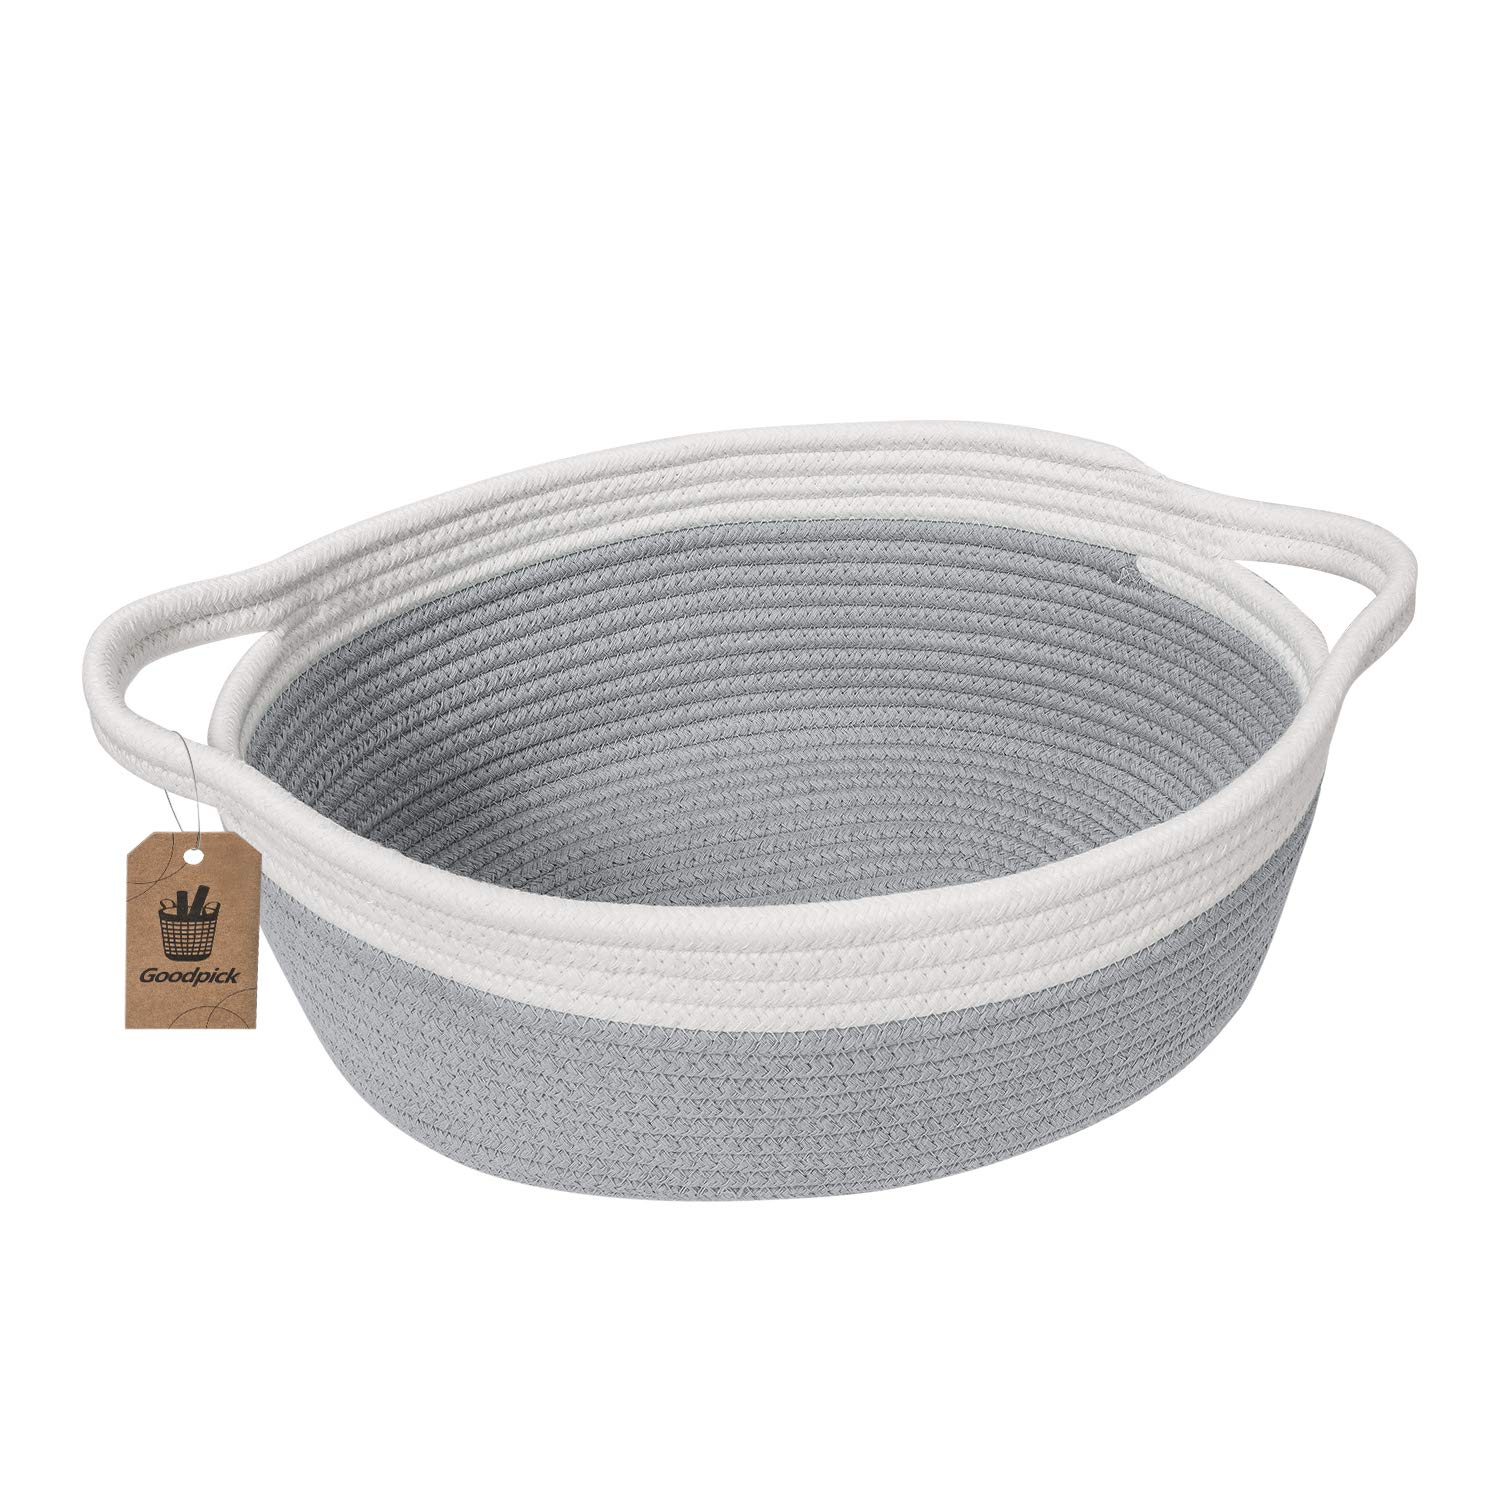 Goodpick Small Woven Basket | Cute Gray Rope Basket | Baby Cotton Basket | Nursery Room Storage Basket | Toy Chest Box with Handles Basket 12''x 8'' x 5'' Oval Candy Color Design